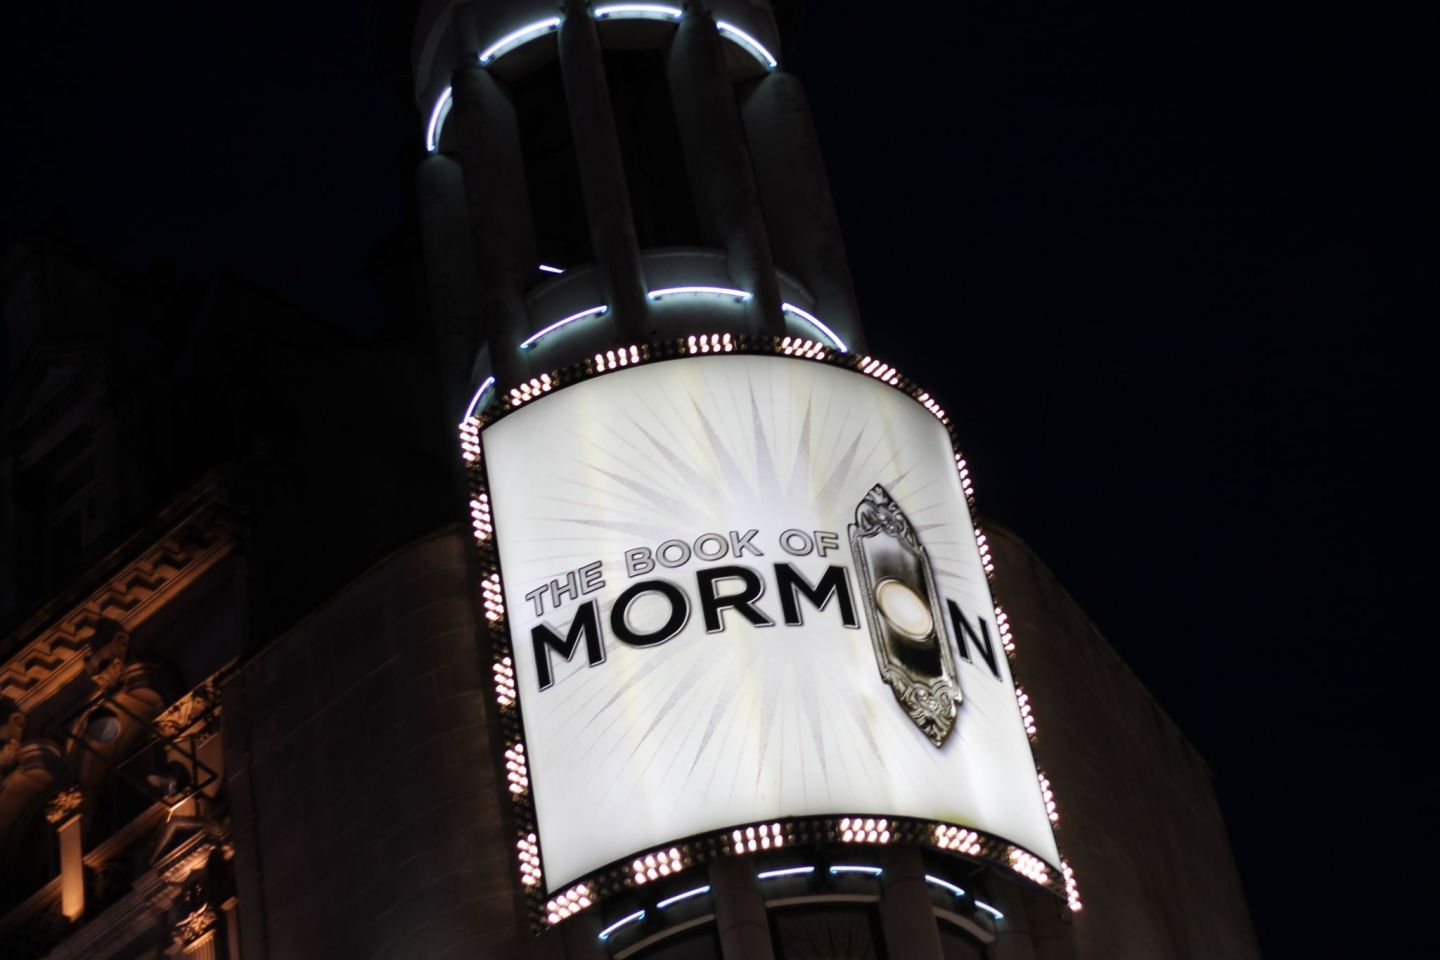 Tuesday Ticket Tricks – How To Buy Cheaper Ticket For The Book Of Mormon